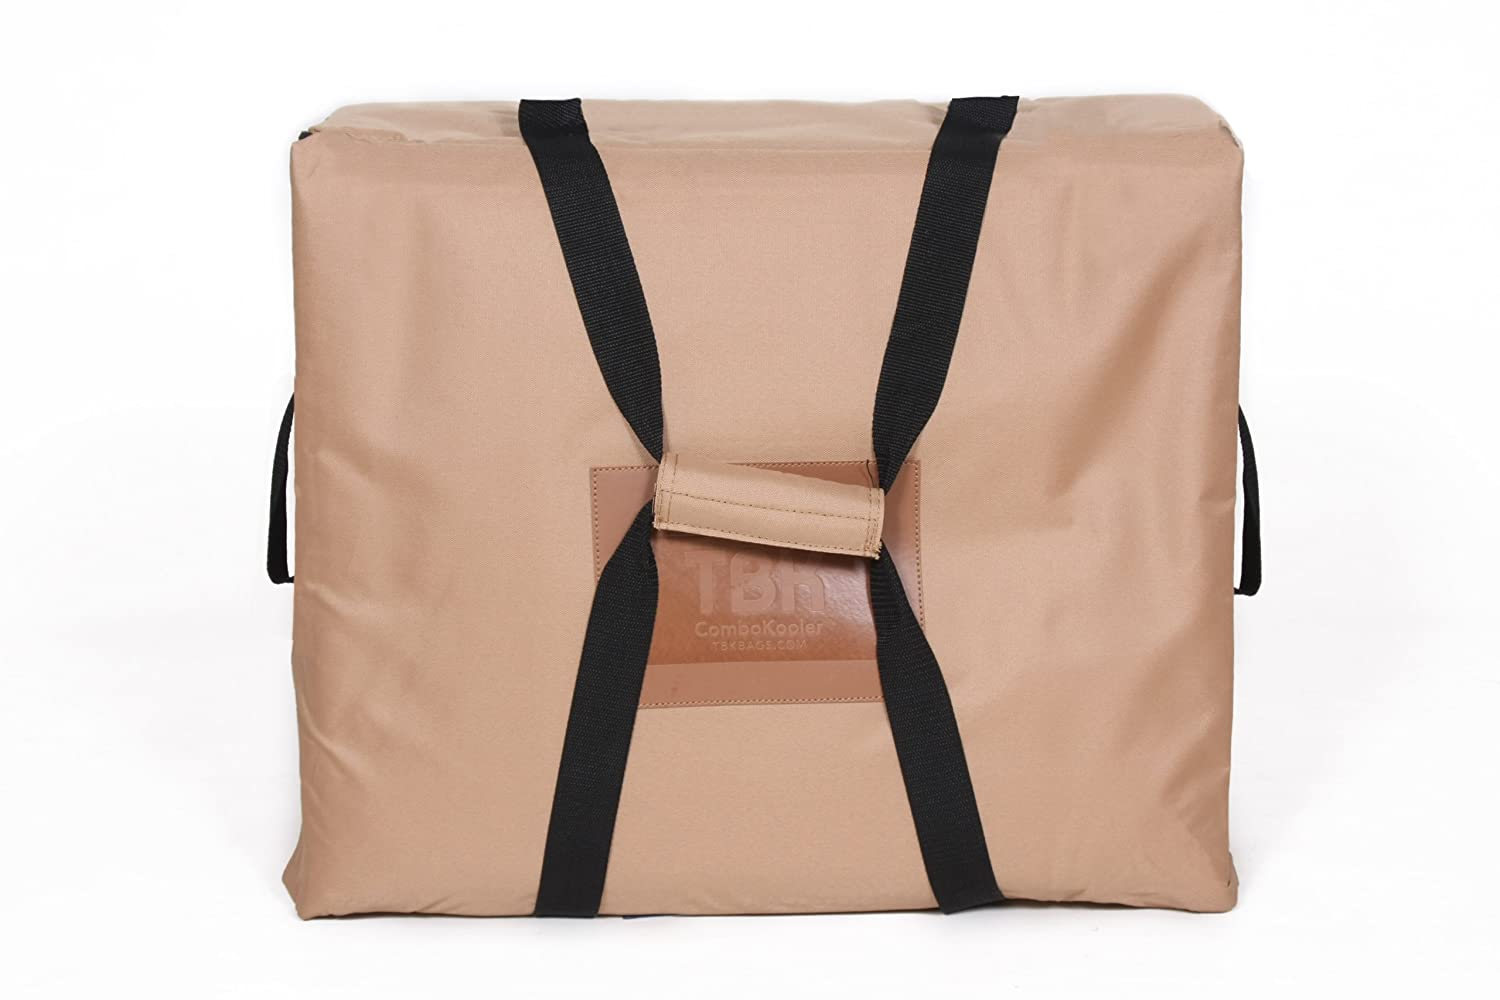 TBK ComboKooler Ultimate Soft Cooler